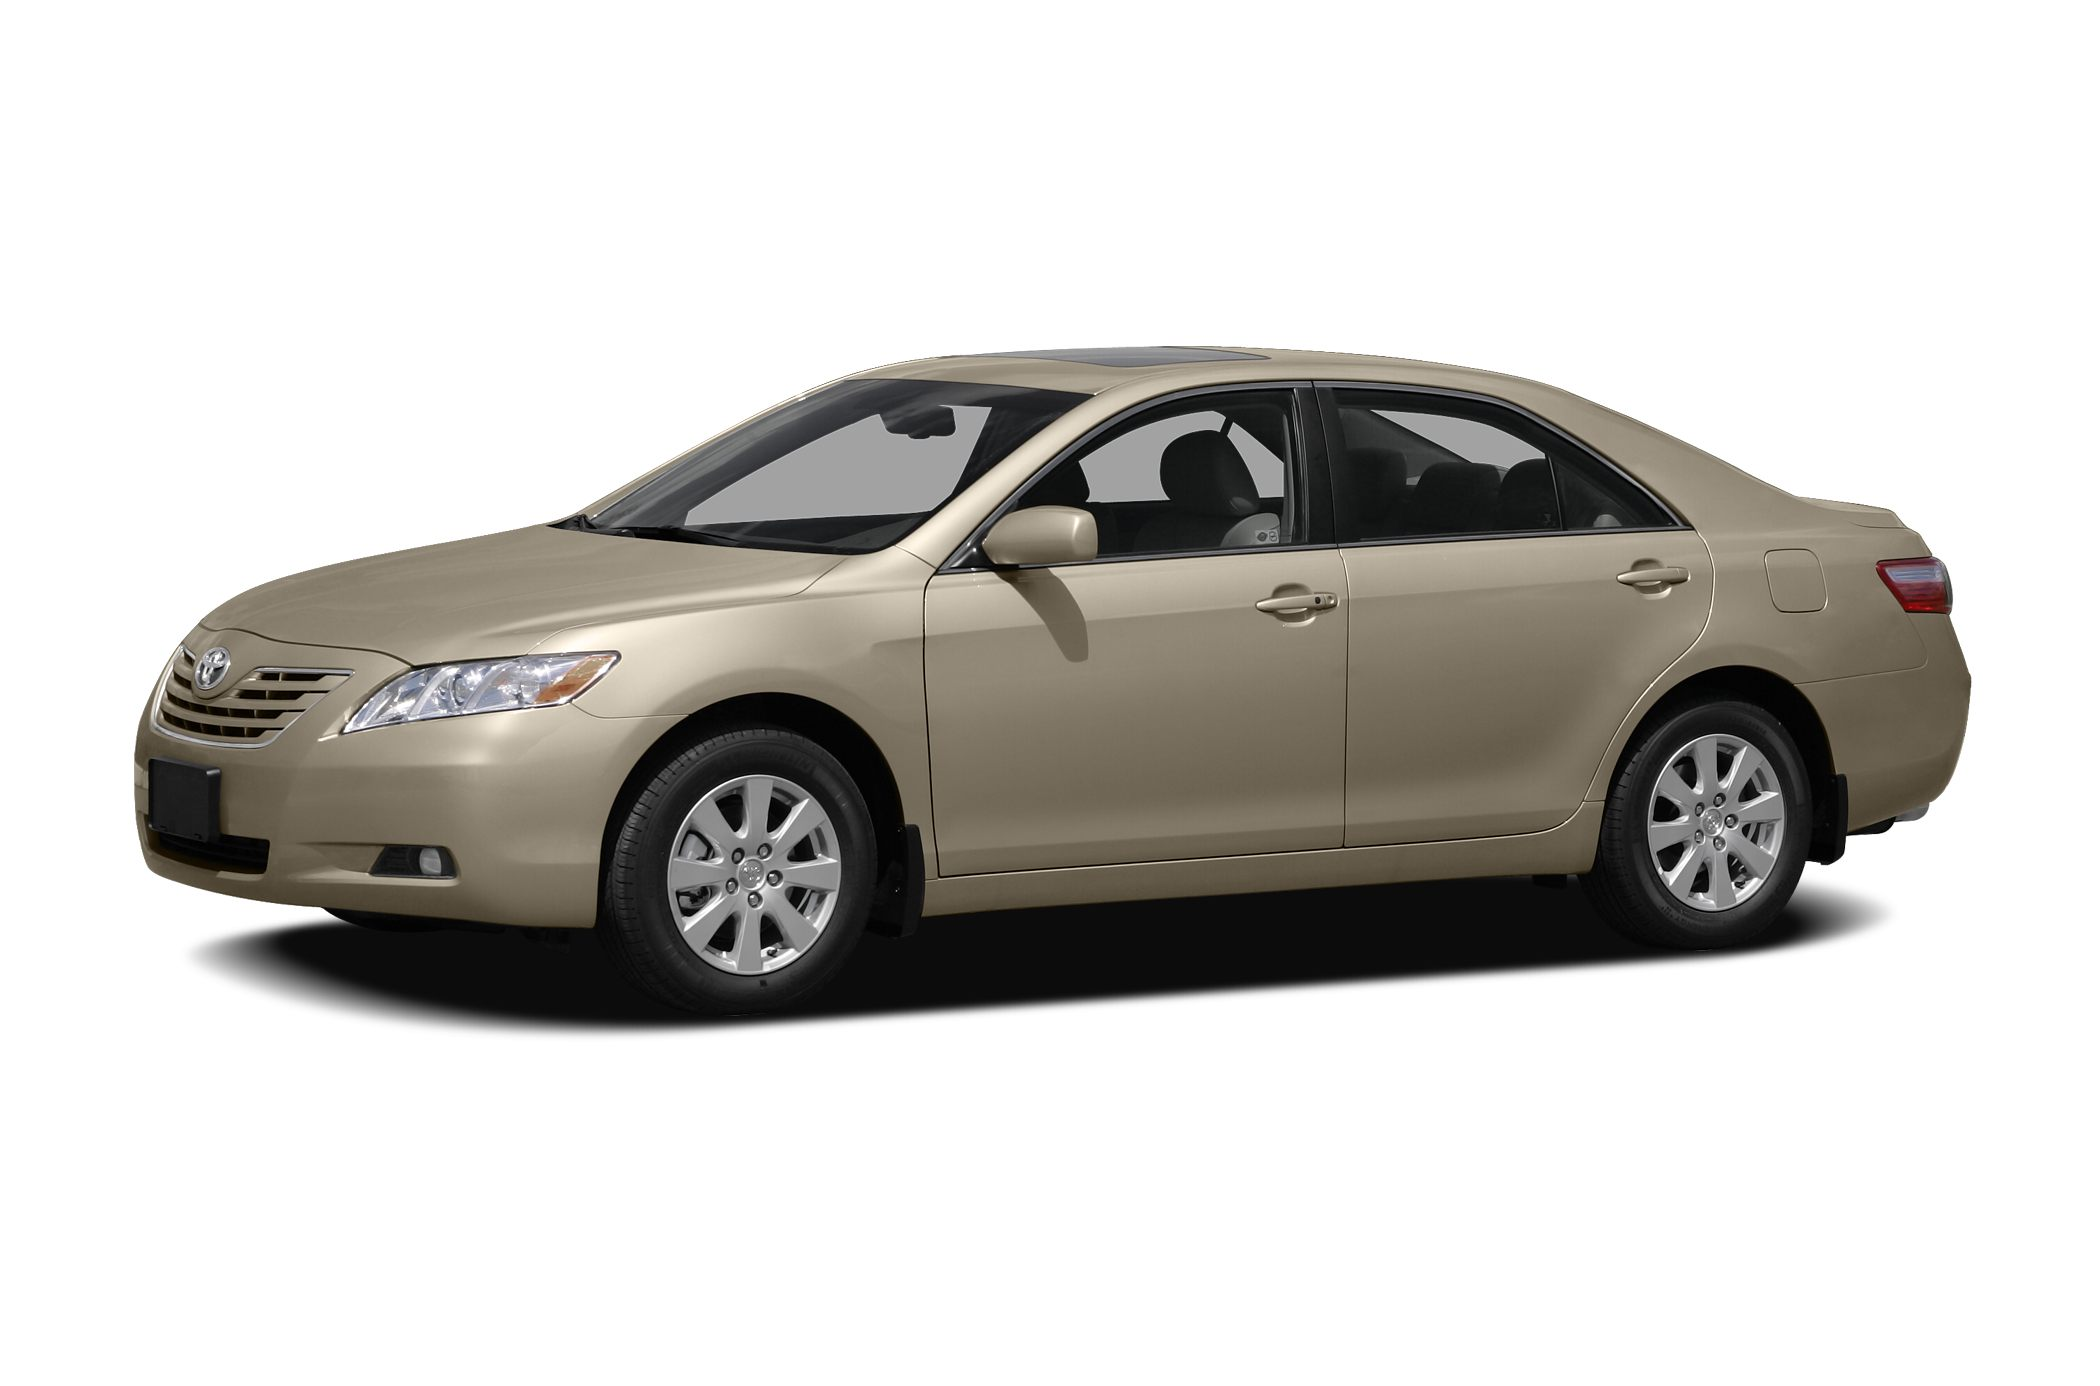 2009 Toyota Camry LE PRICE DROP FROM 12488 EPA 31 MPG Hwy21 MPG City LE trim CARFAX 1-Owner